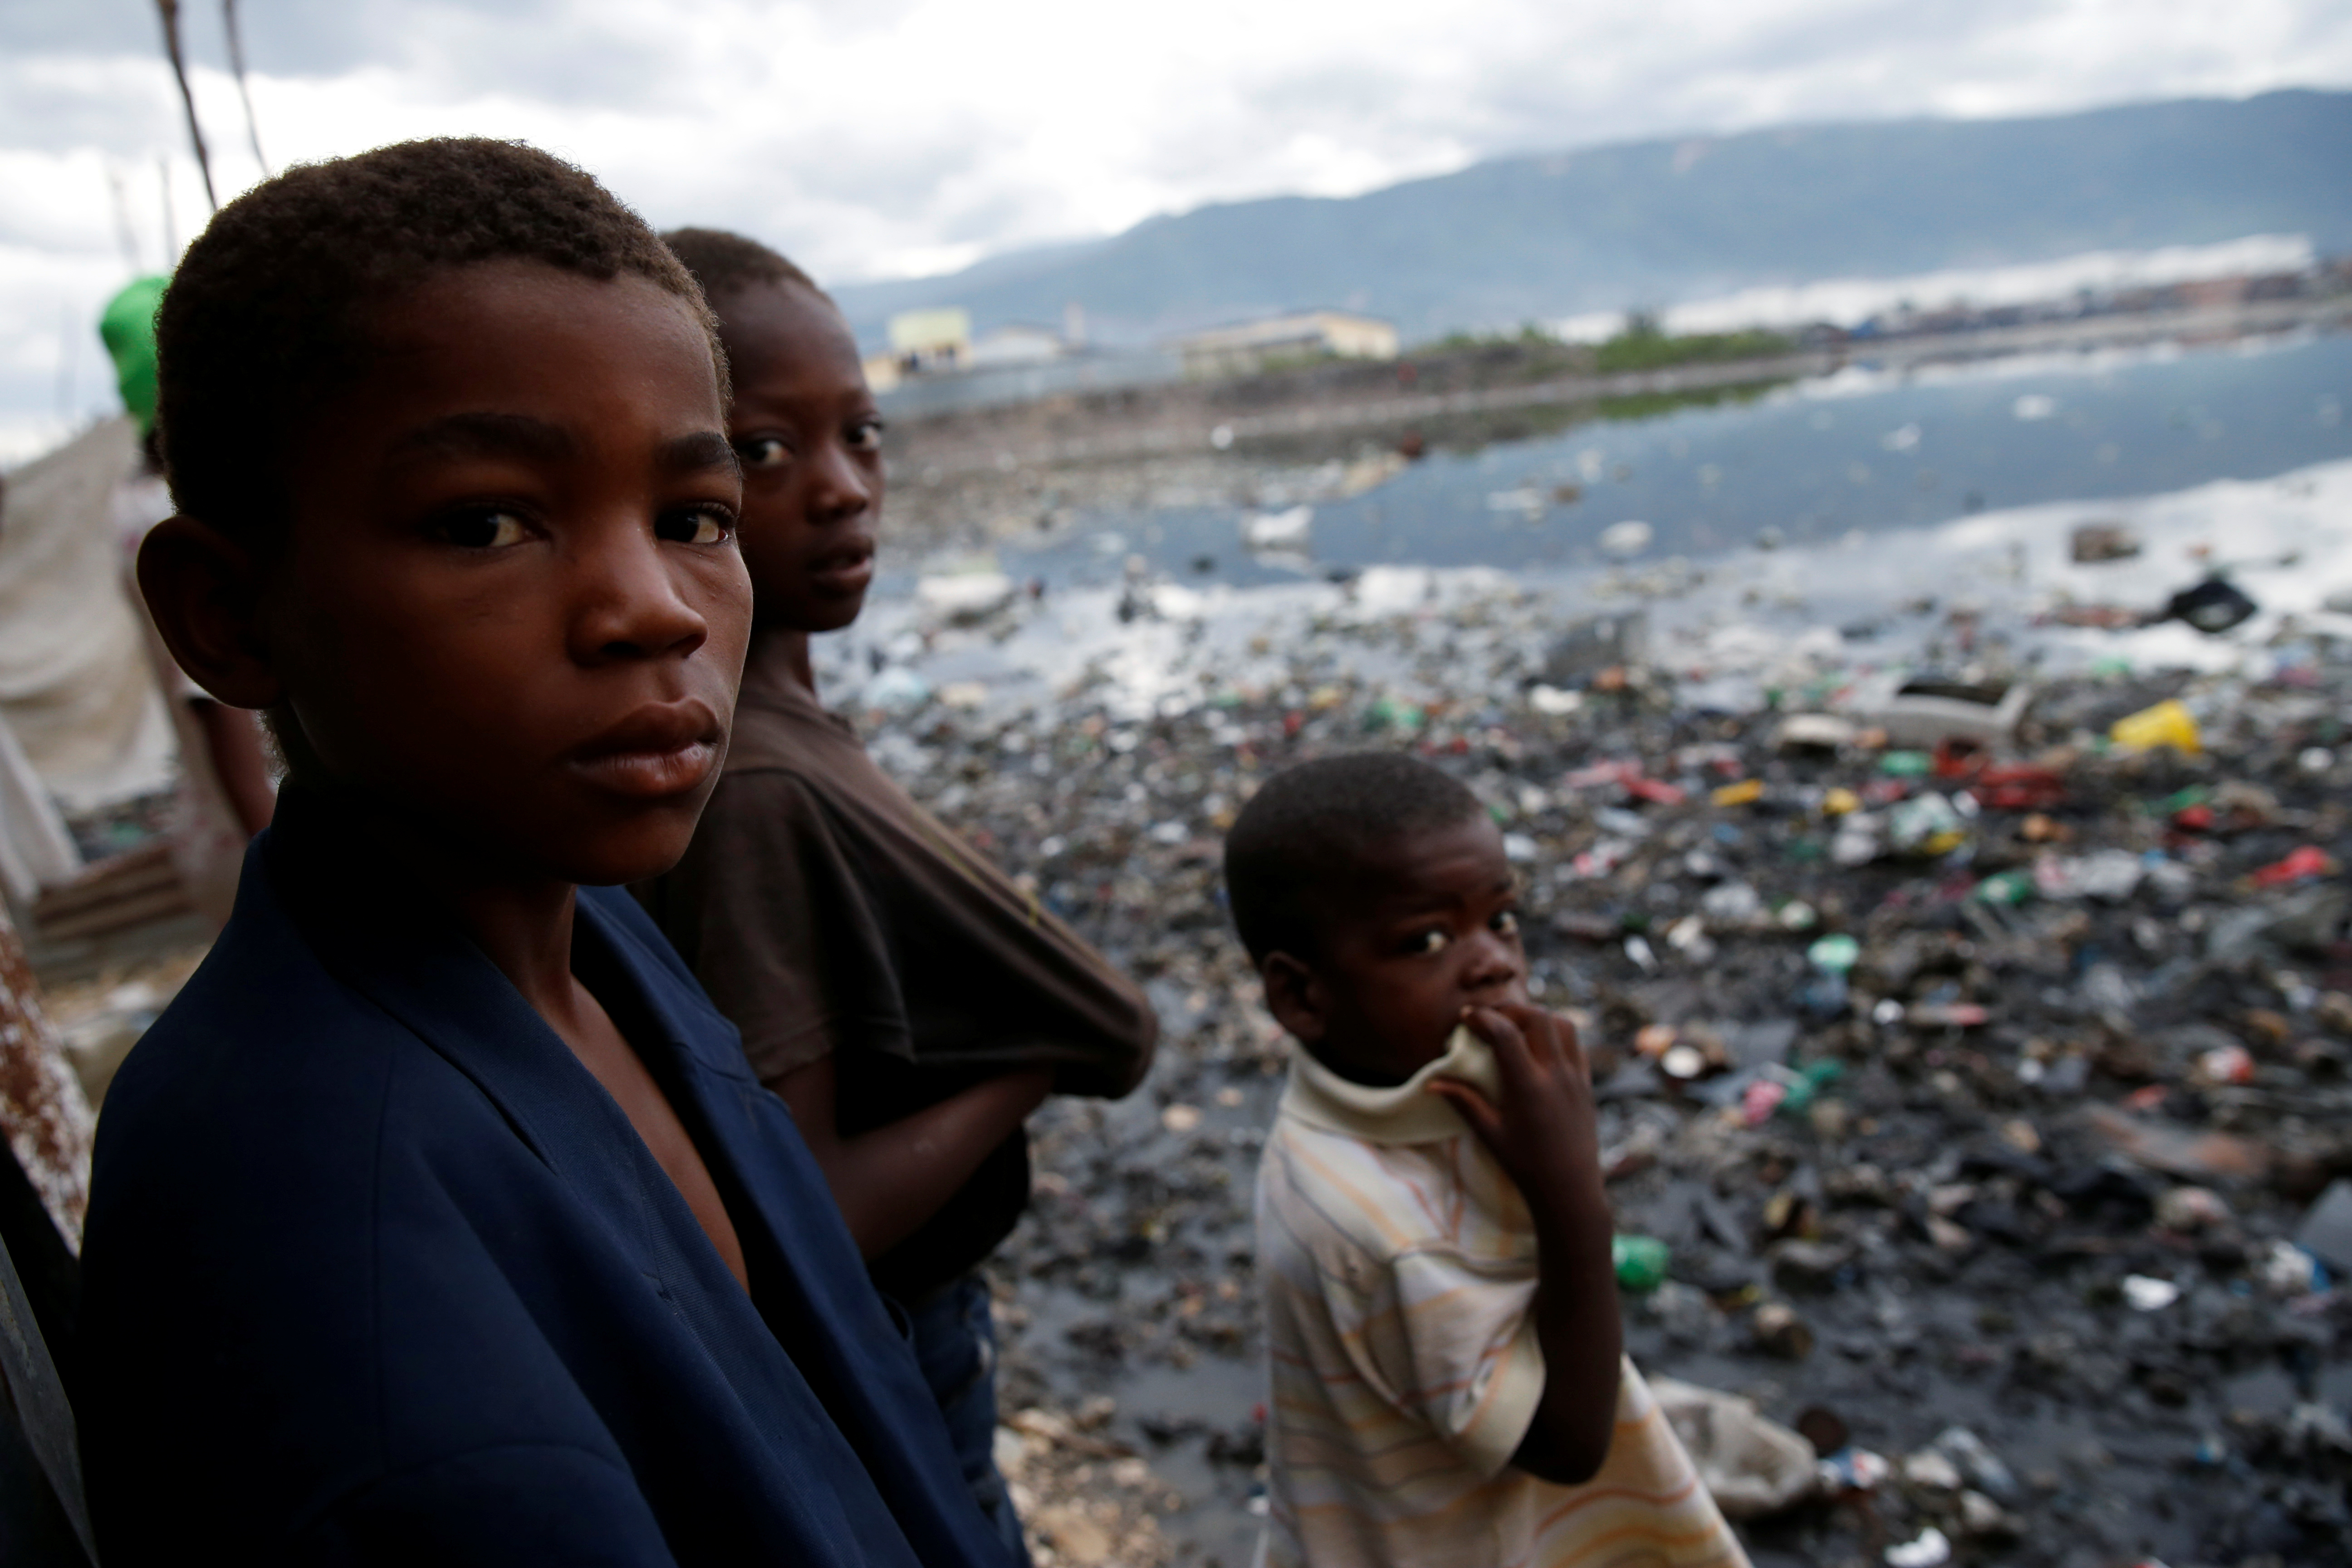 Children stand next to a flooded area after Hurricane Matthew passes Cite-Soleil in Port-au-Prince, Haiti, Oct. 5, 2016.